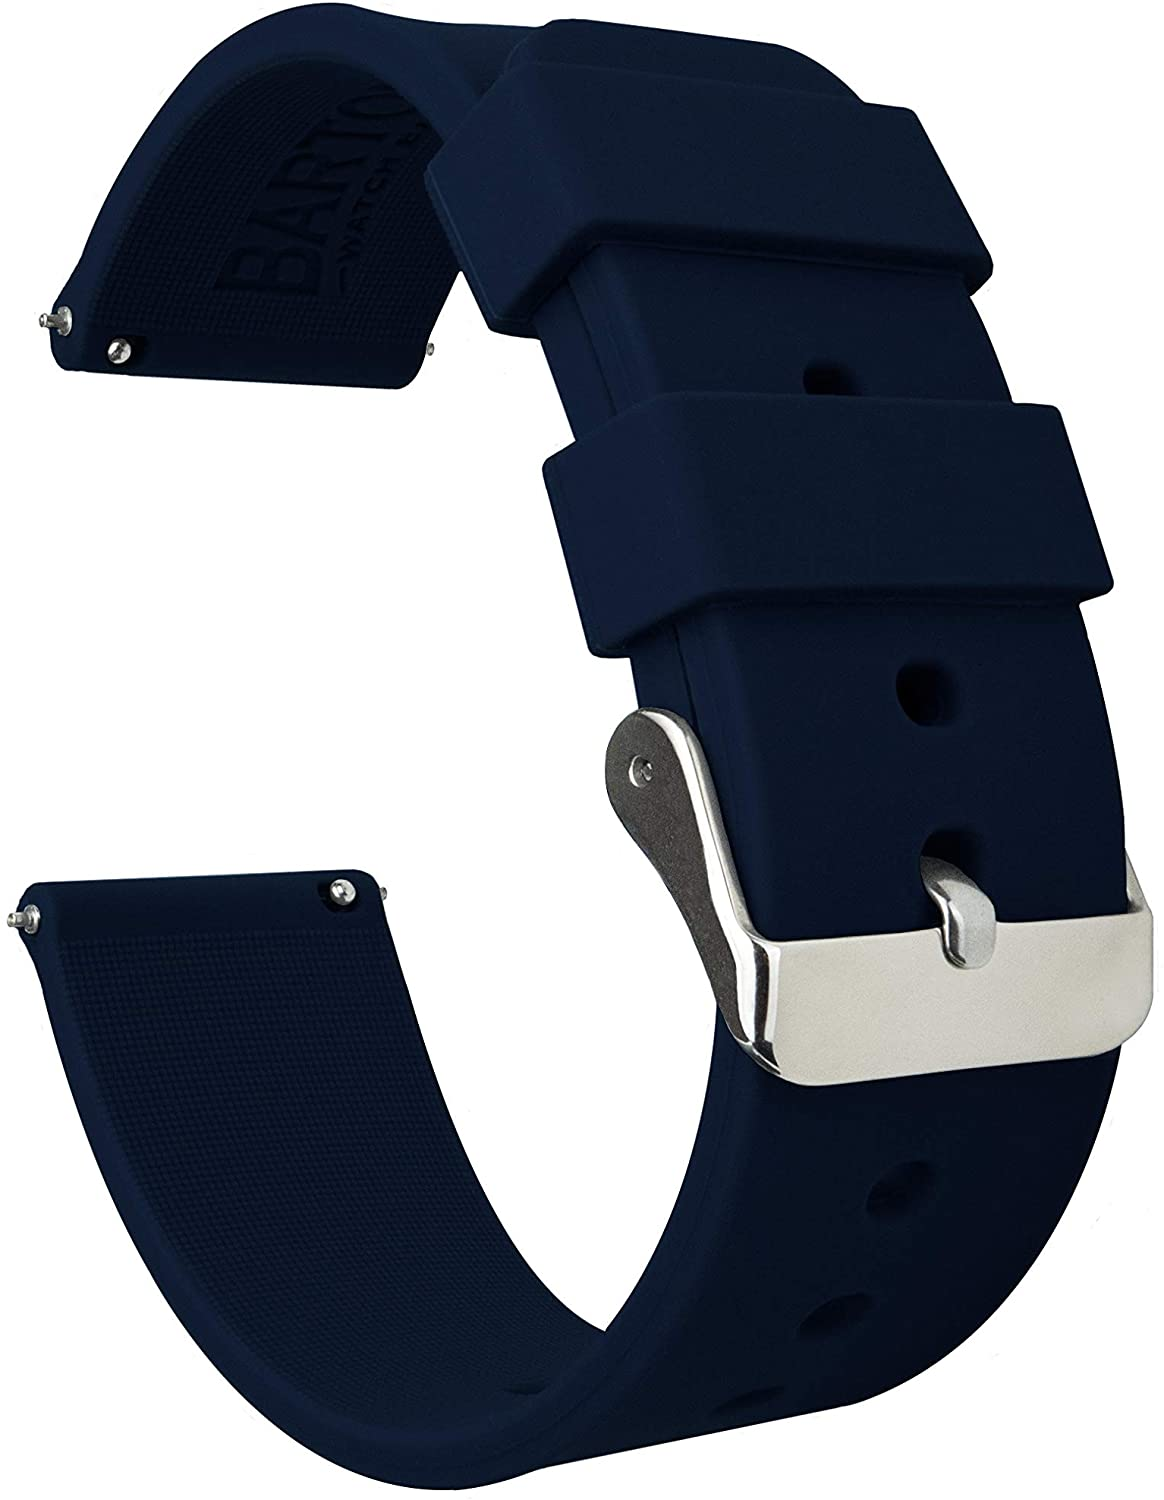 BARTON Watch Bands - Soft Silicone Quick Release Straps - Choose Color & Width - 16mm, 18mm, 20mm, 22mm, 24mm - Silky Soft Rubber Watch Bands